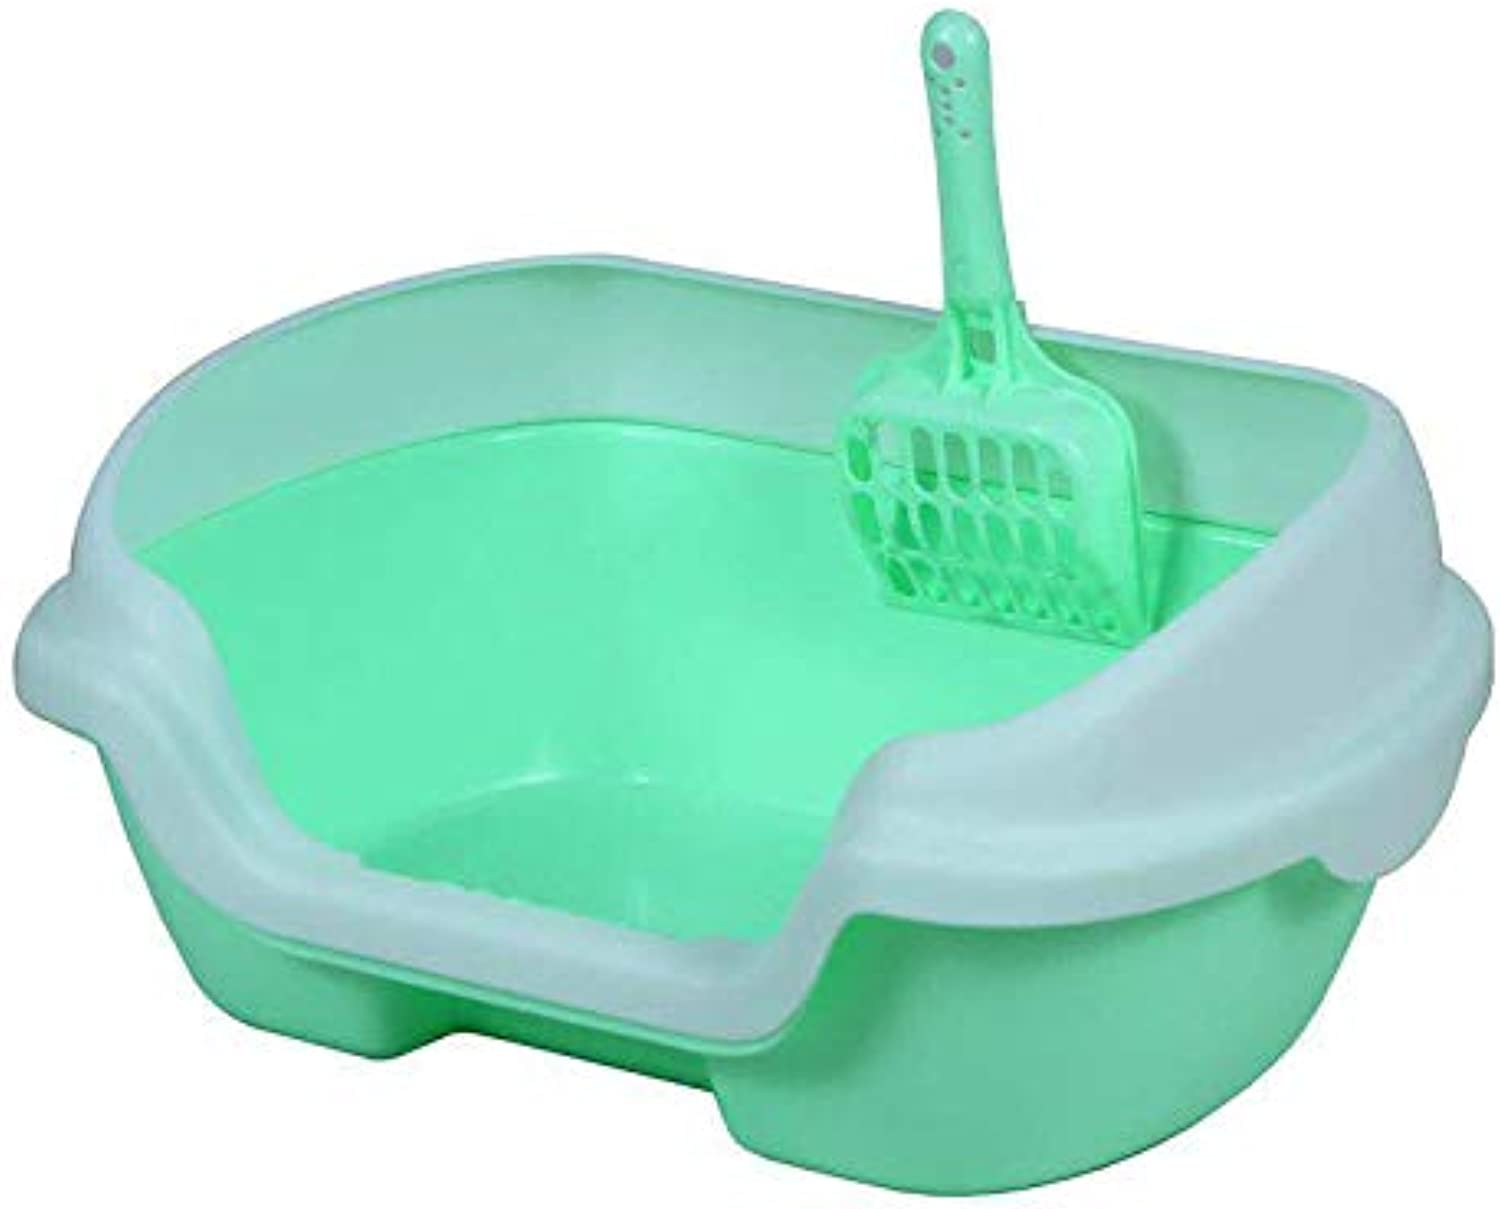 Pet Online Pet Cleaning Supplies Medium semiEnclosed cat Toilet Environmentally Friendly Easy to Clean Litter Box, 40×30×18cm, Green